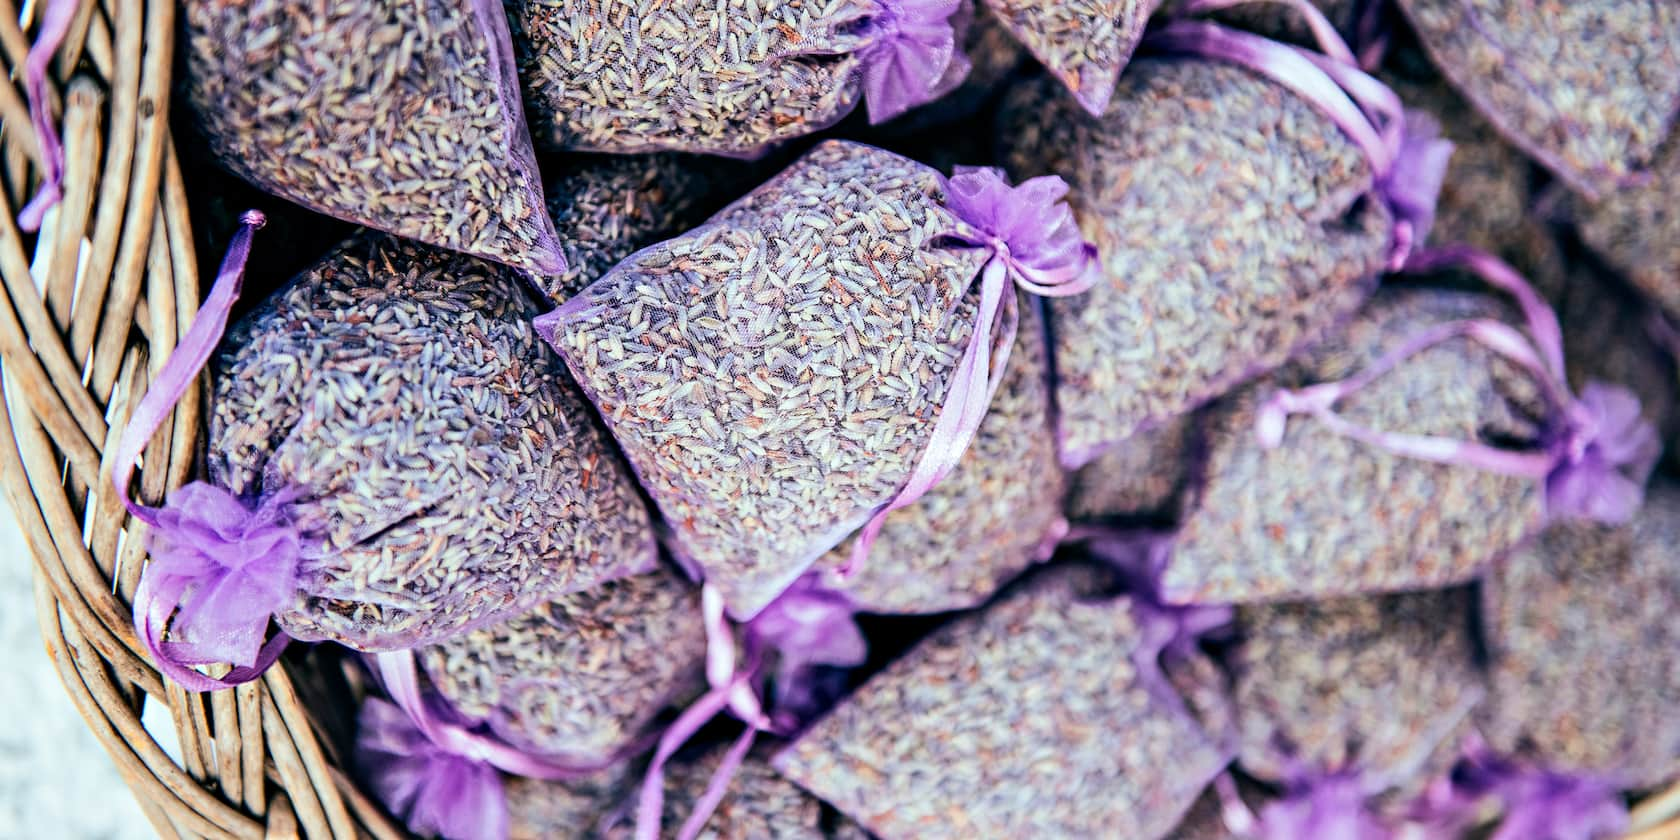 Several small sacks of lavender tied with a ribbon